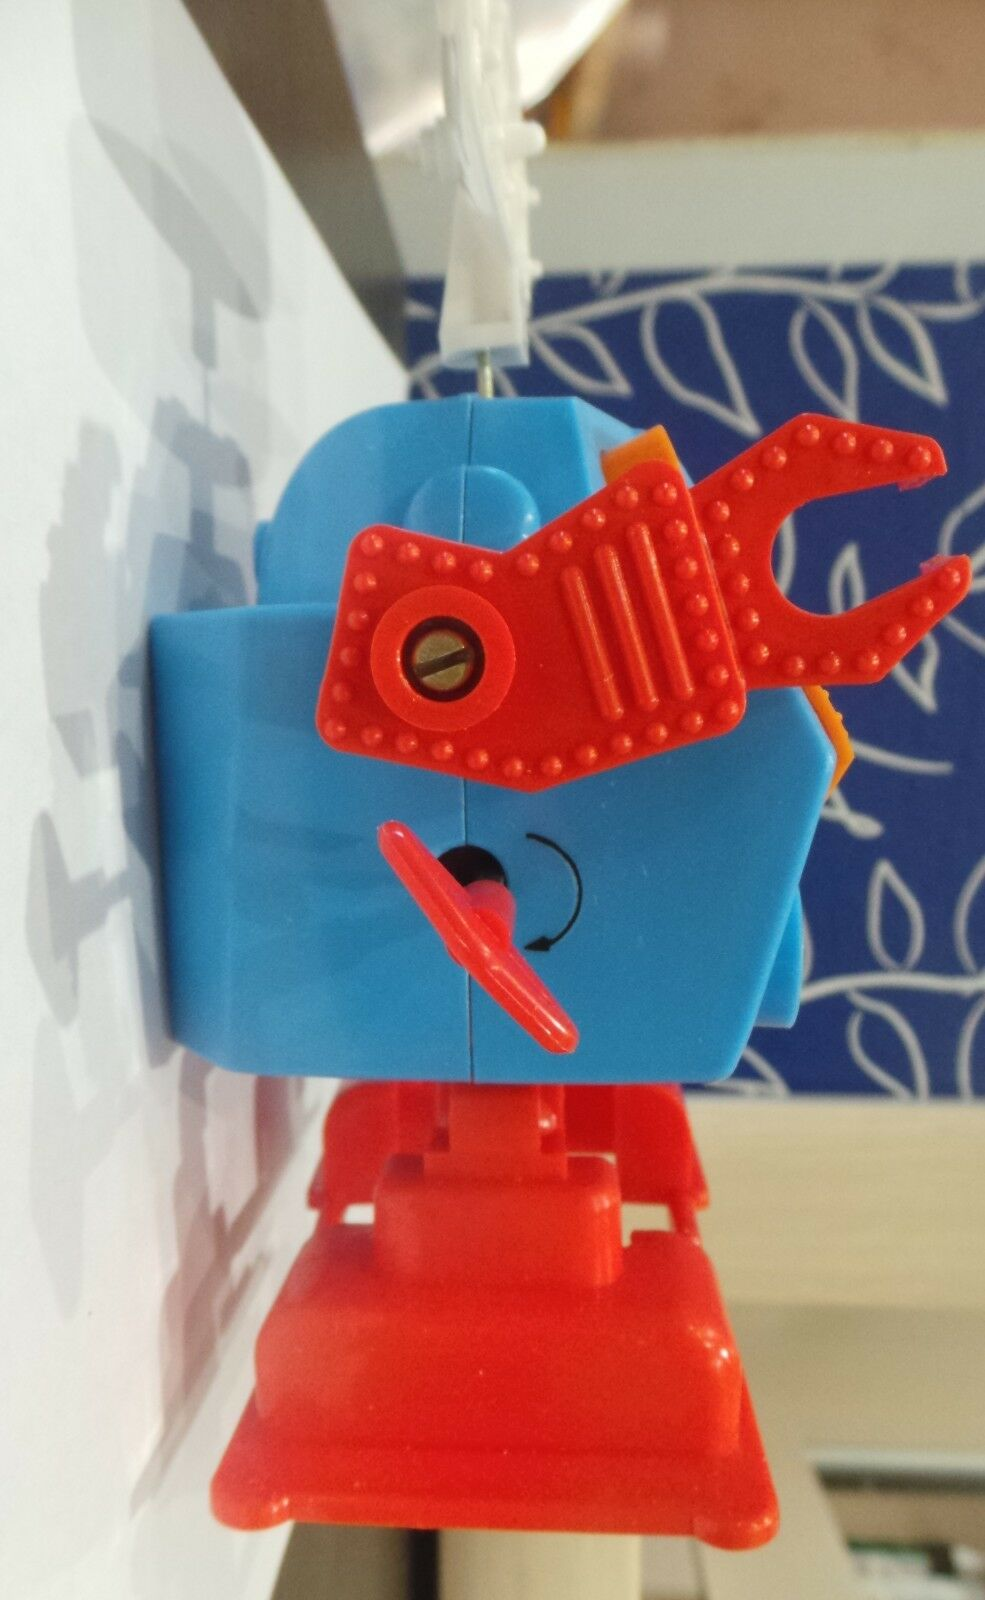 USSR RUSSIAN SOVIET RARE VINTAGE WIND UP SPACE TOY ROBOT ROBOT ROBOT PLASTIC WORKING KEY 573f14